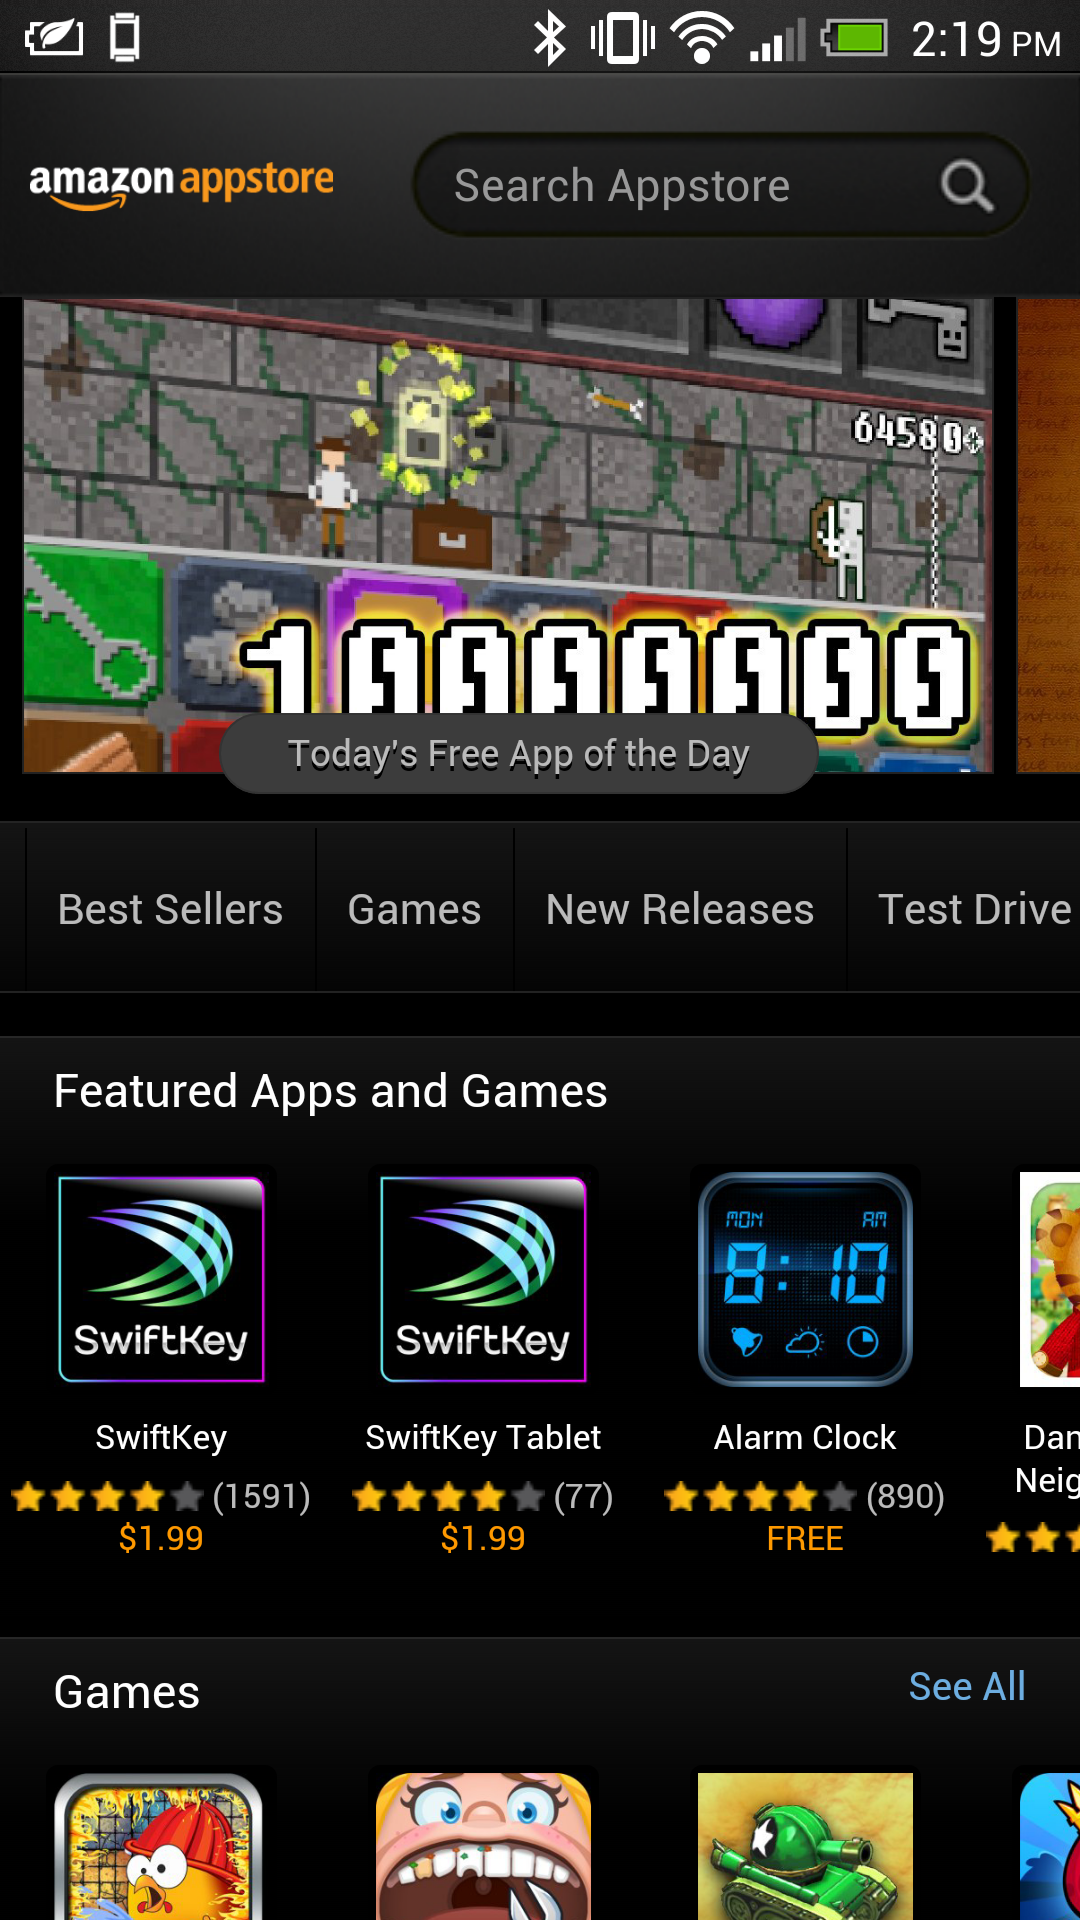 Amazon Appstore for Android launches in Canada